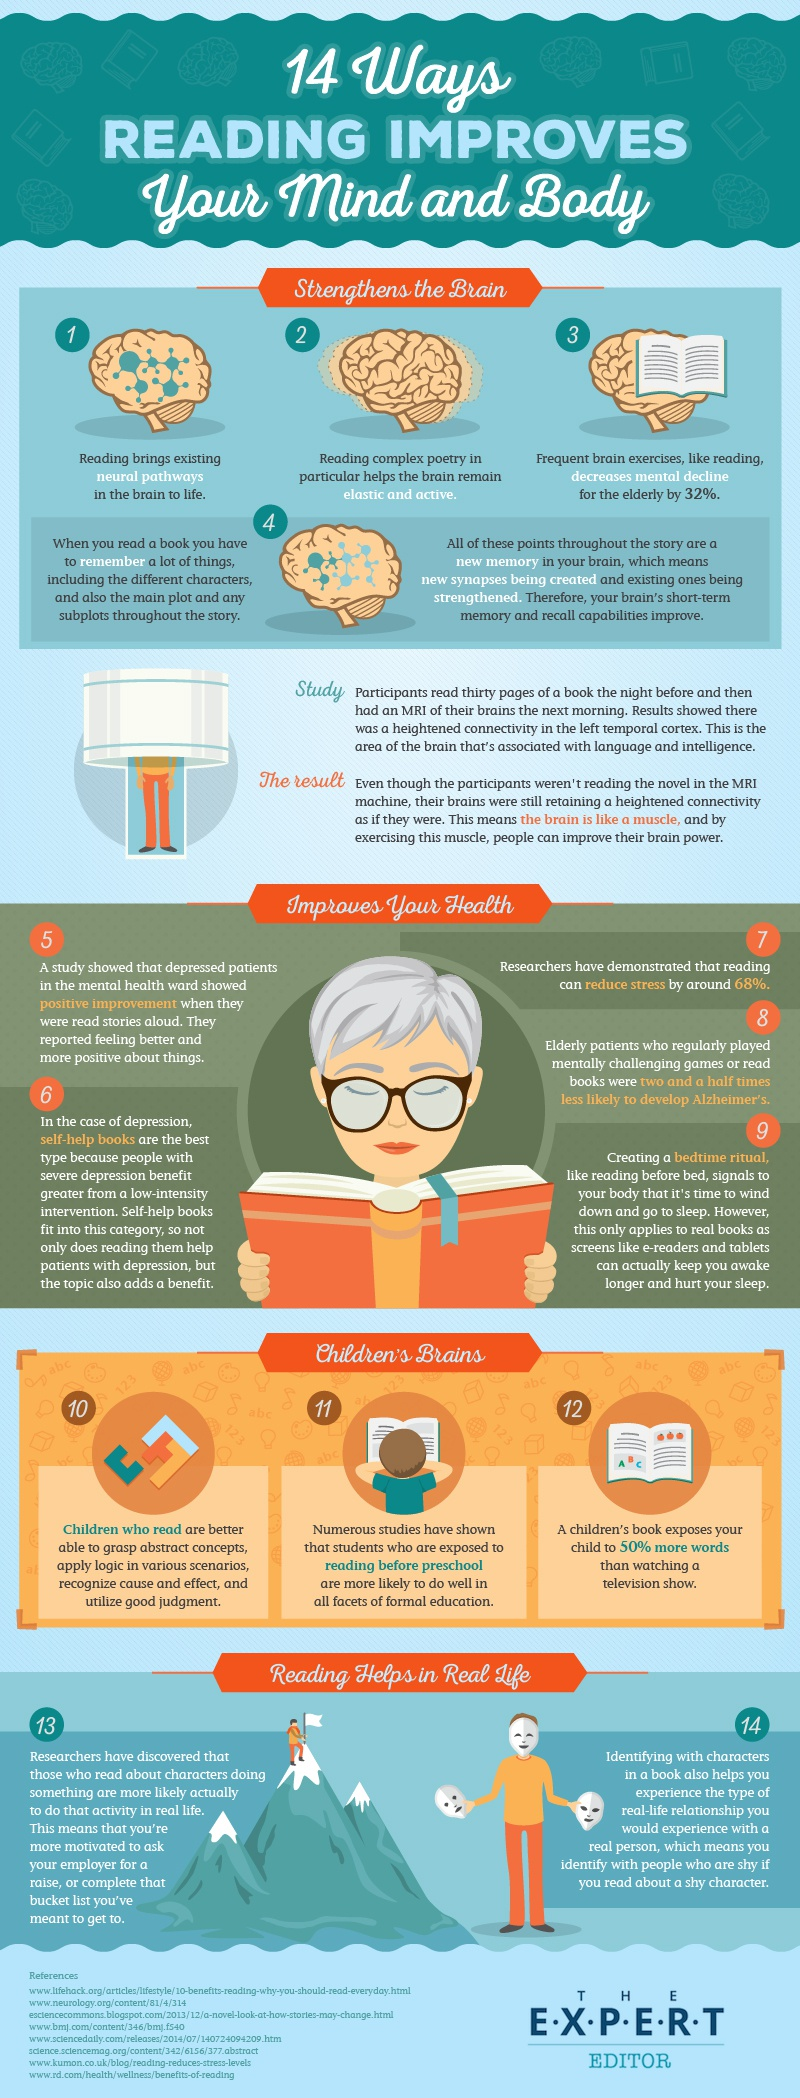 reading benefits infographic